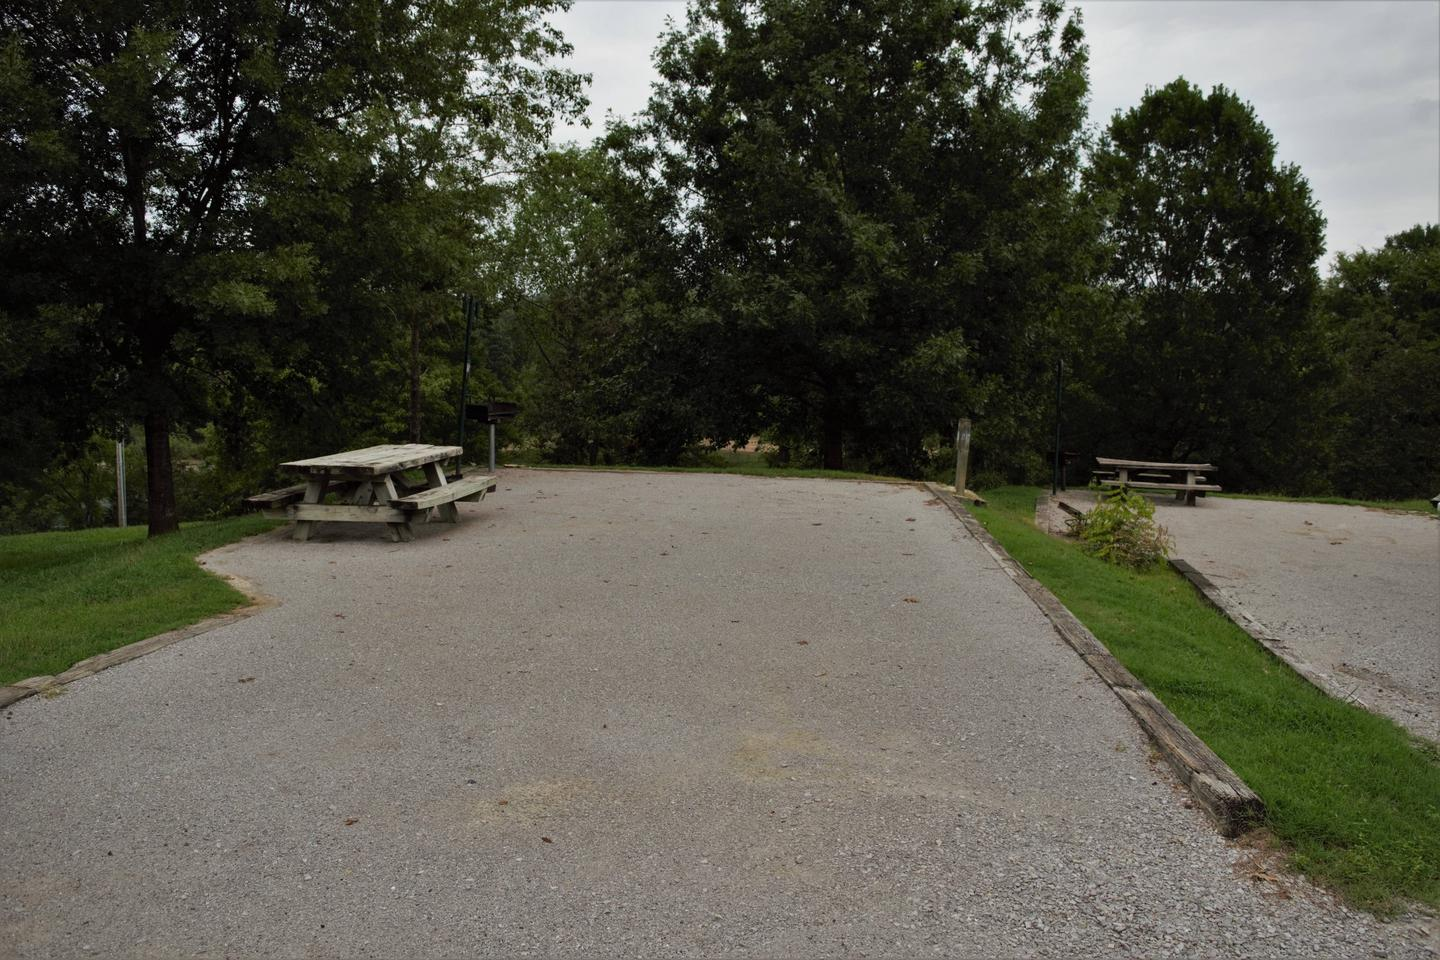 WILLOW GROVE CAMPGROUND SITE #28 BACK INWILLOW GROVE CAMPGROUND SITE #28